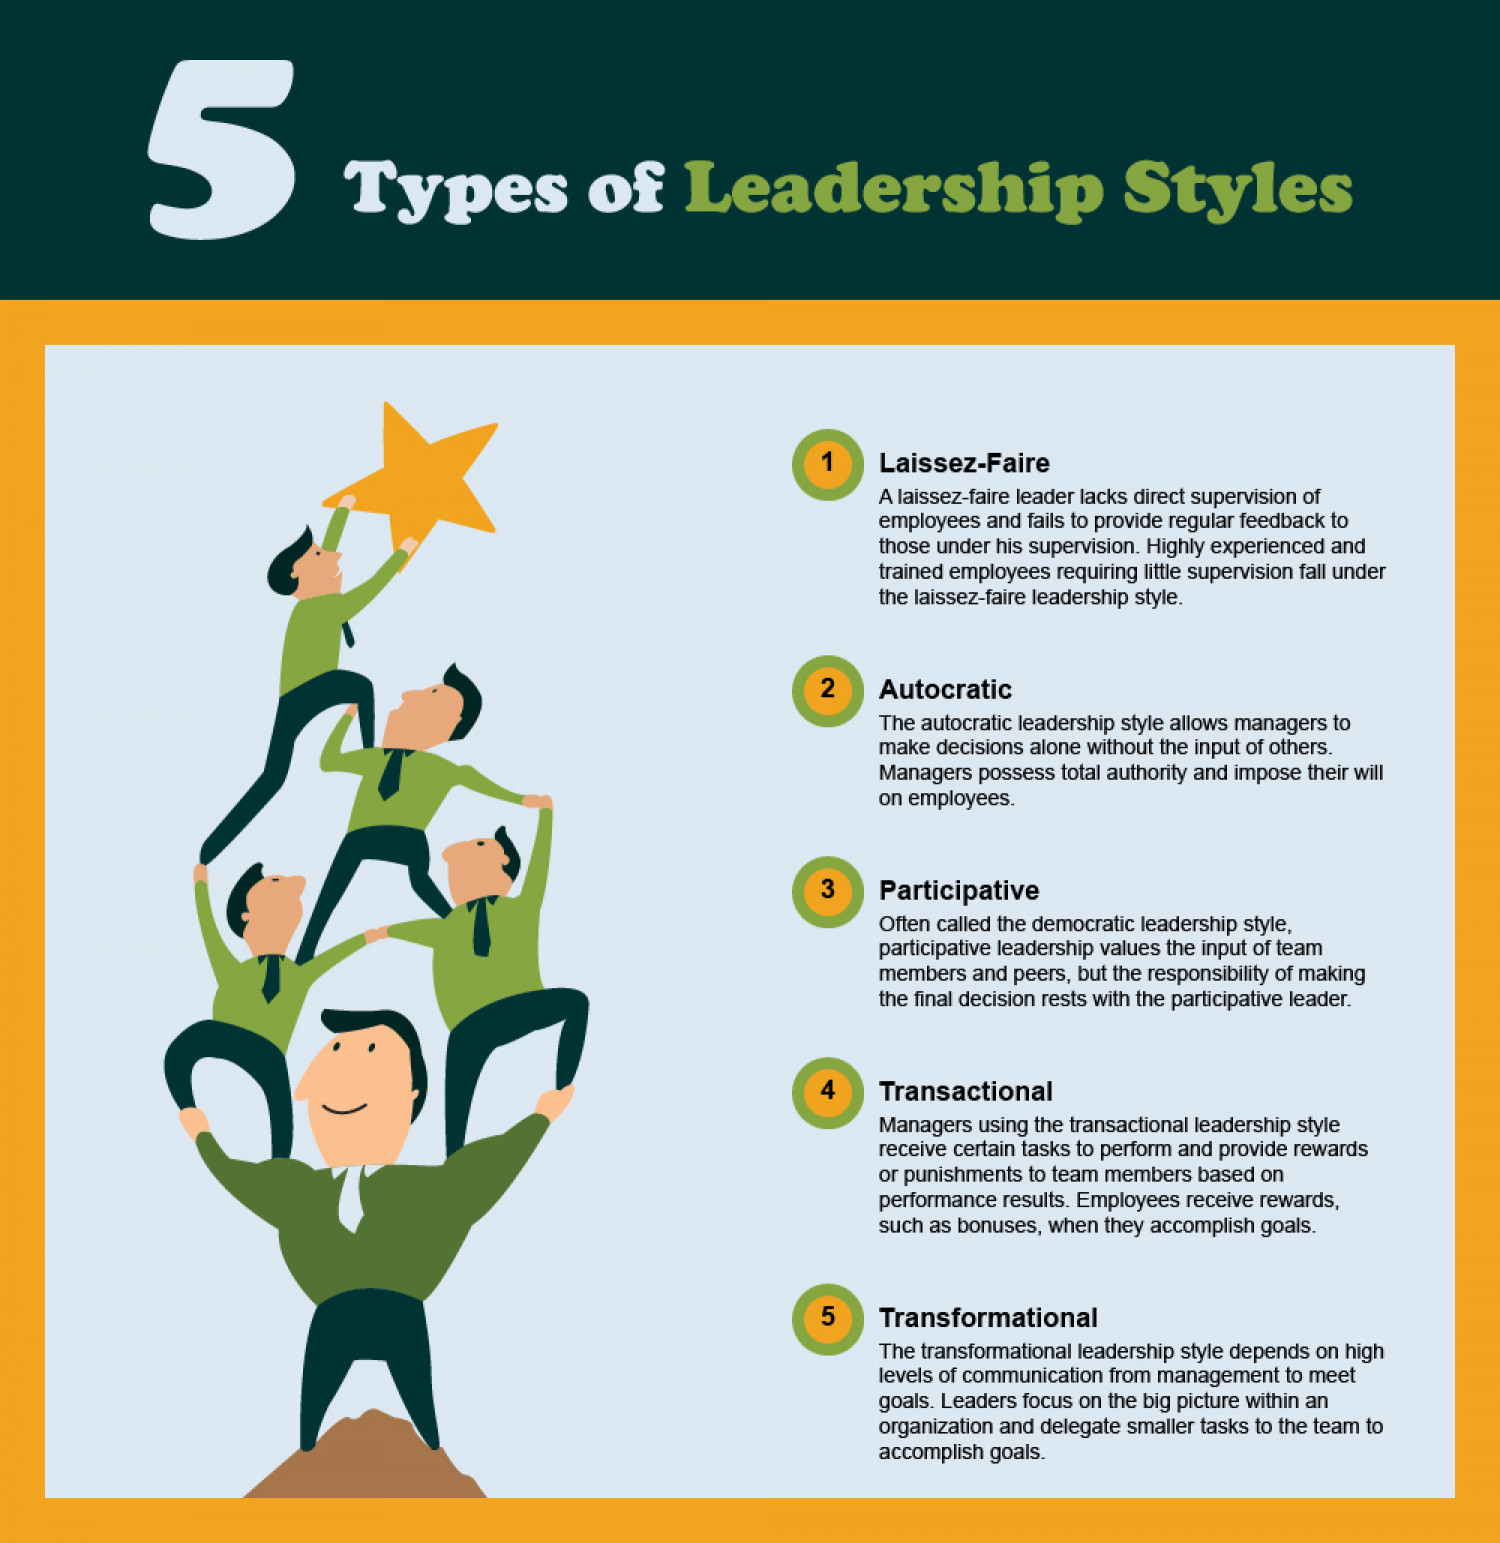 survey of leadership styles in different Becoming a strong leader requires a clear definition of leadership here are 4 different leadership styles that can help clarify leadership characteristics.